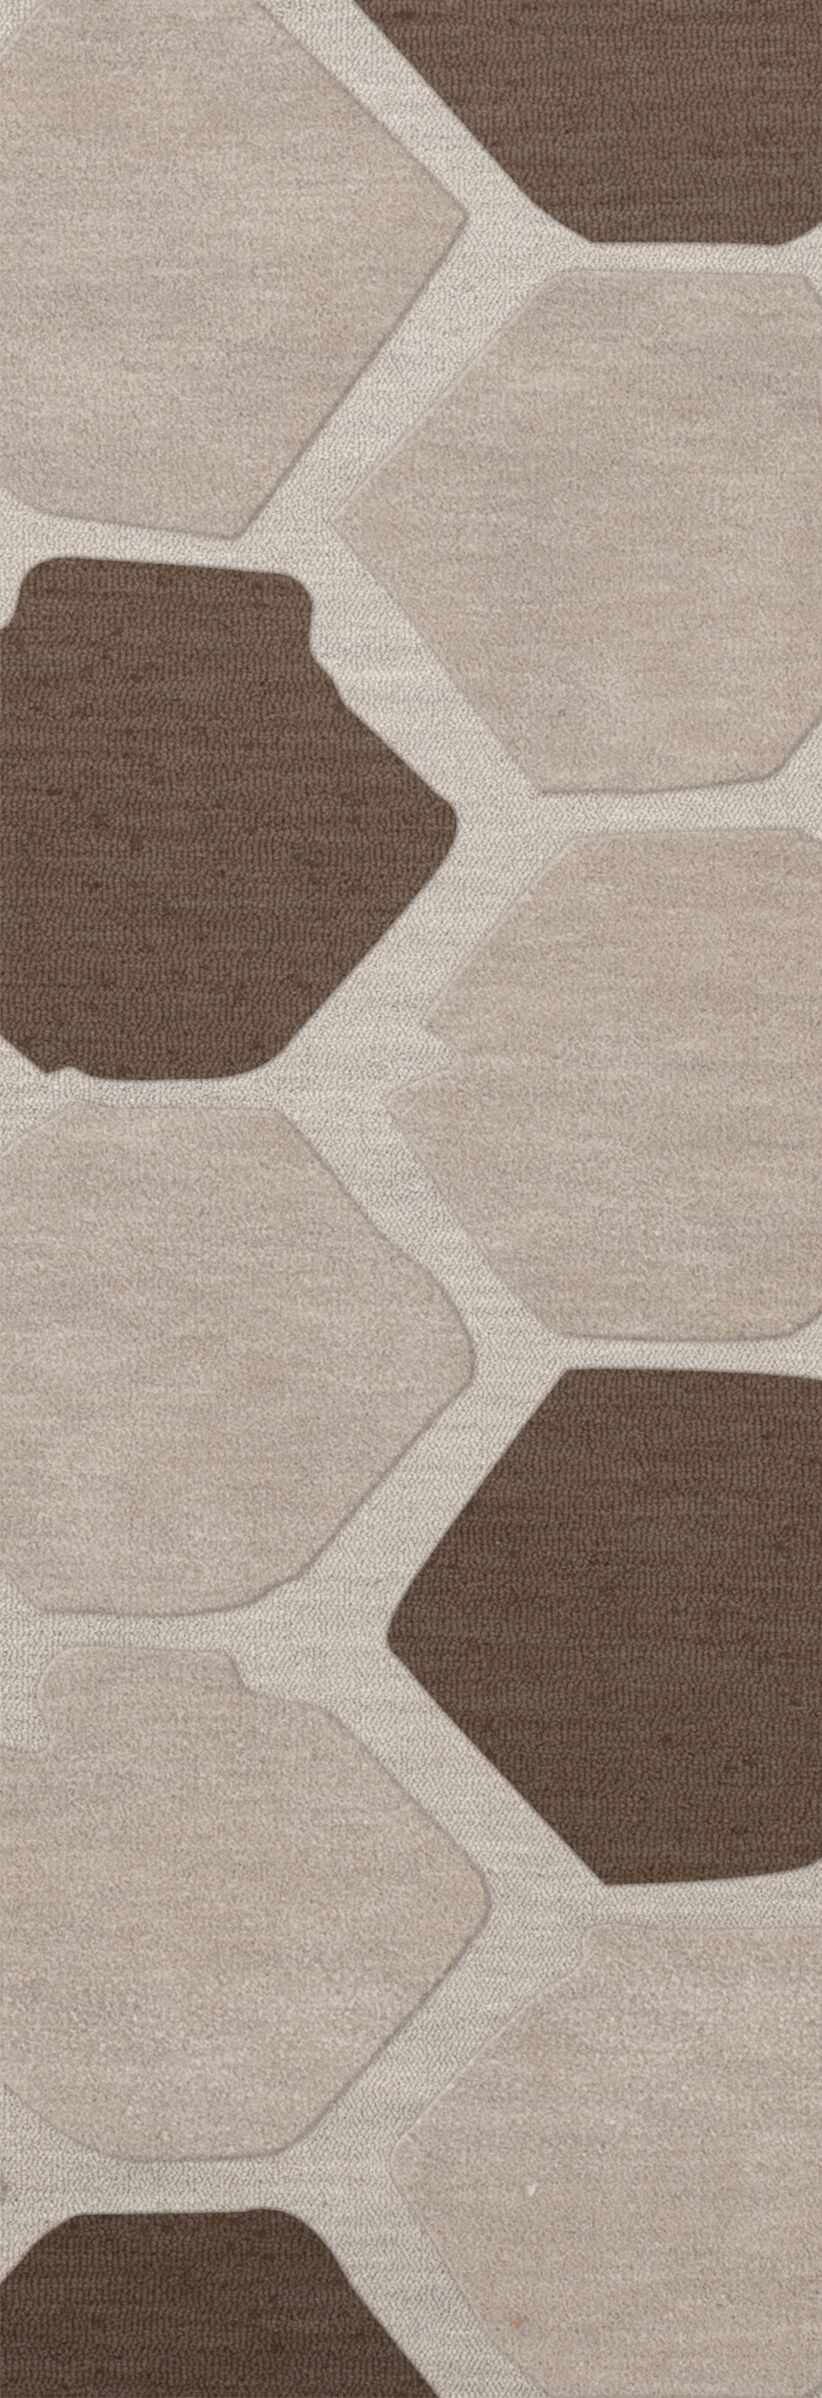 Dunson Wool Croissant Area Rug Rug Size: Runner 2'6